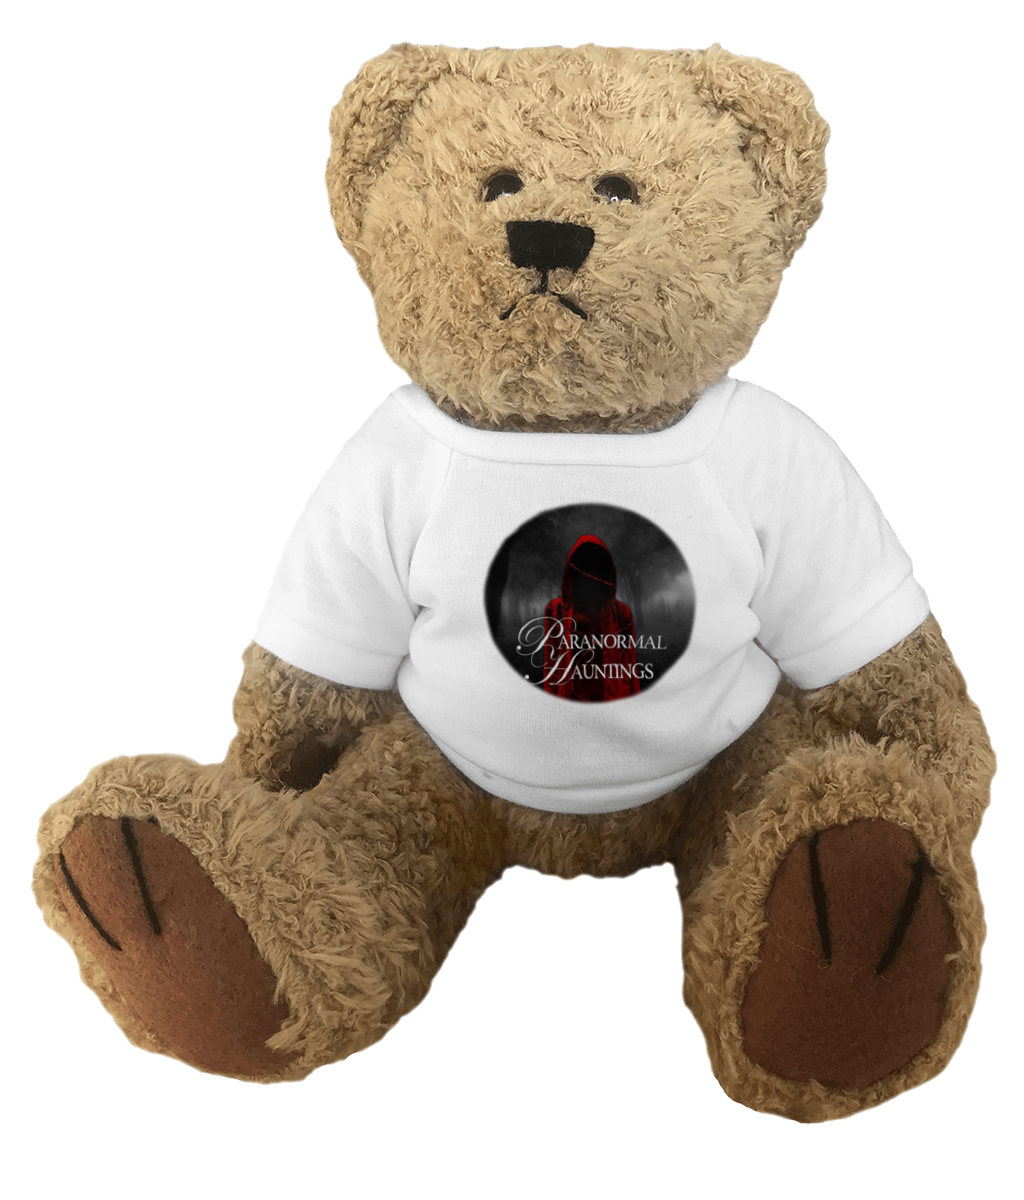 Paranormal Hauntings Teddy Bear - Spooked Clothing